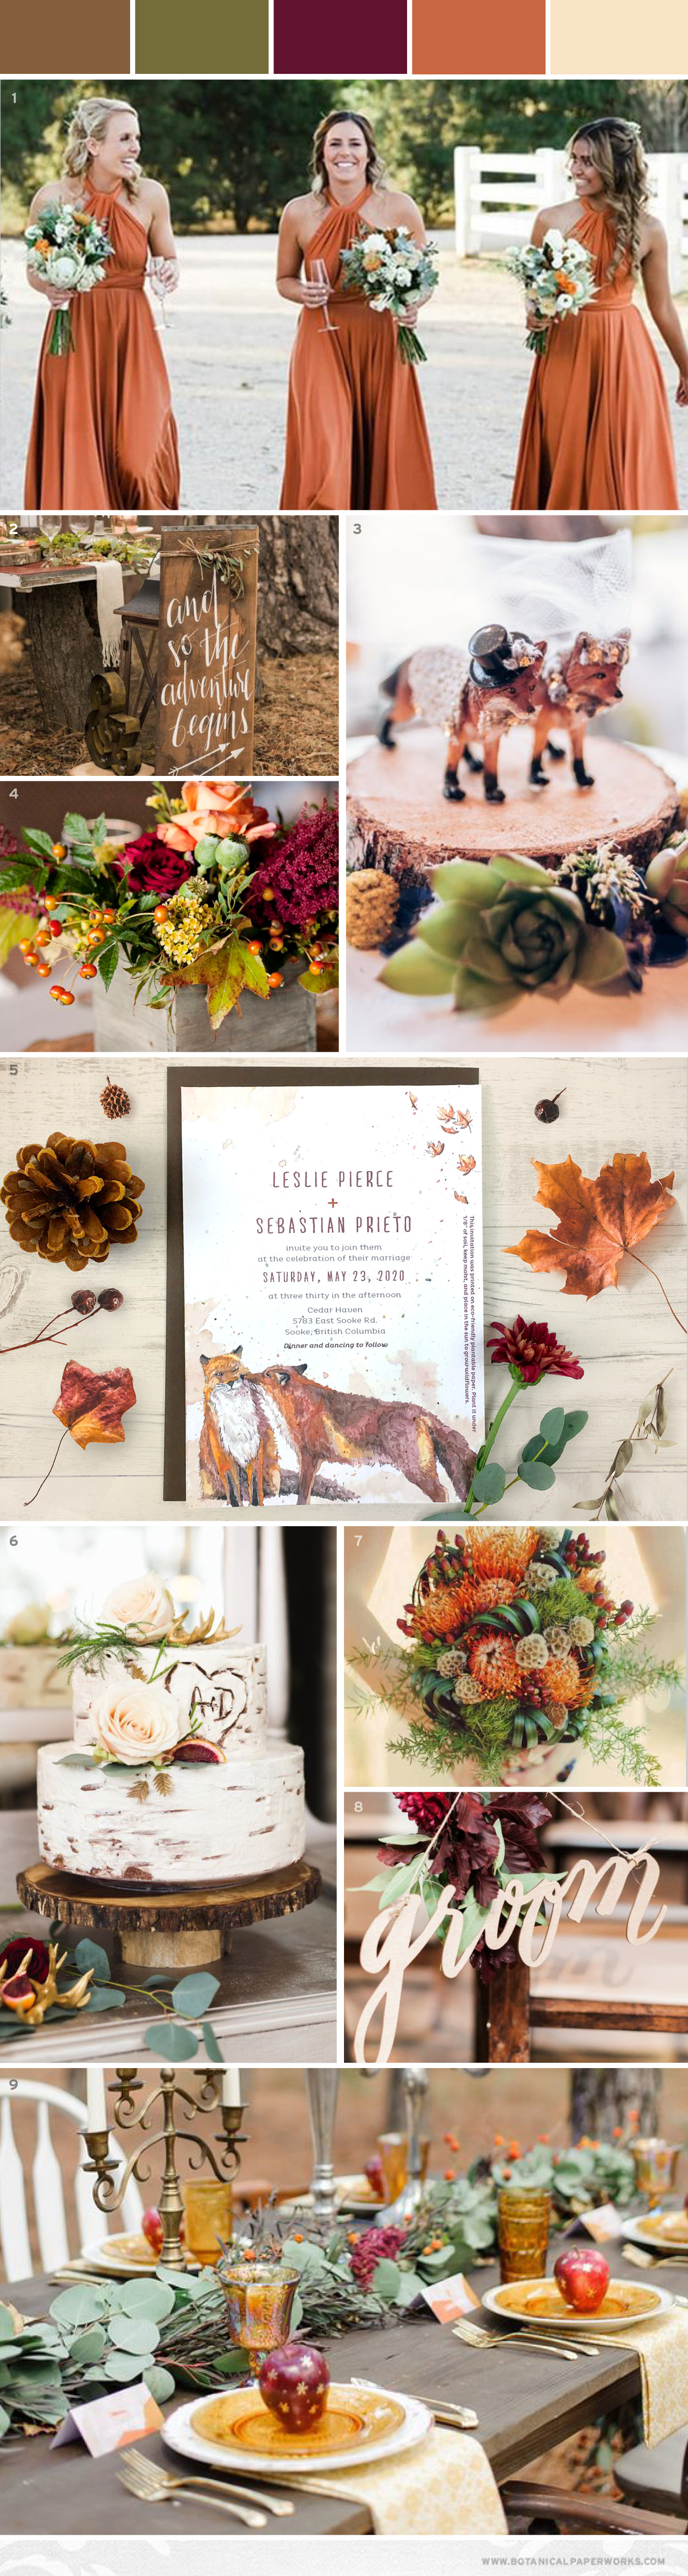 This autumn woodland wedding inspiration features classic fall colors and two adorable foxes!